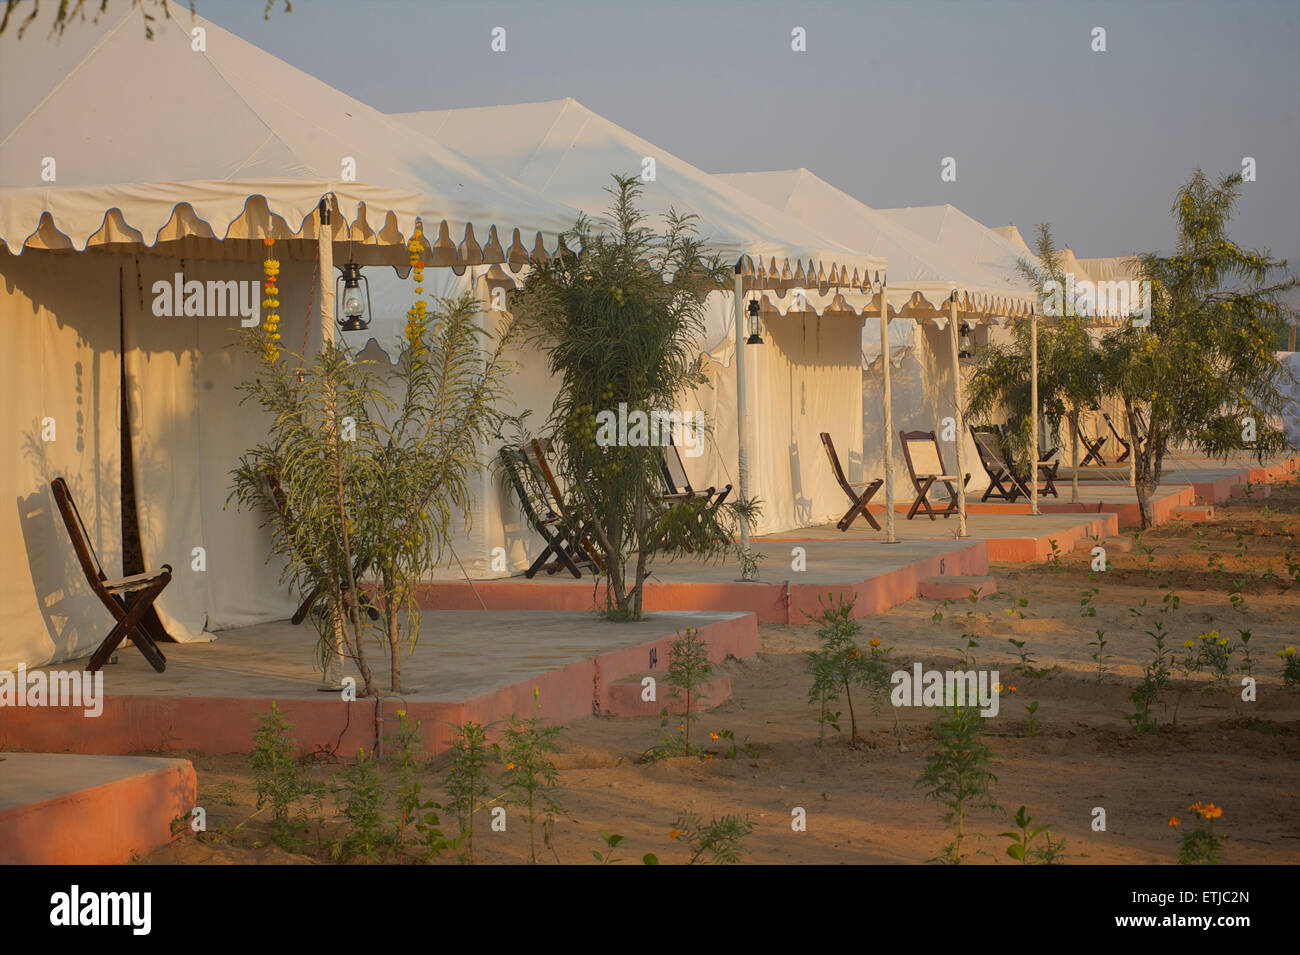 Royal Heritage Camp, Pushkar, Rajasthan, India - Stock Image